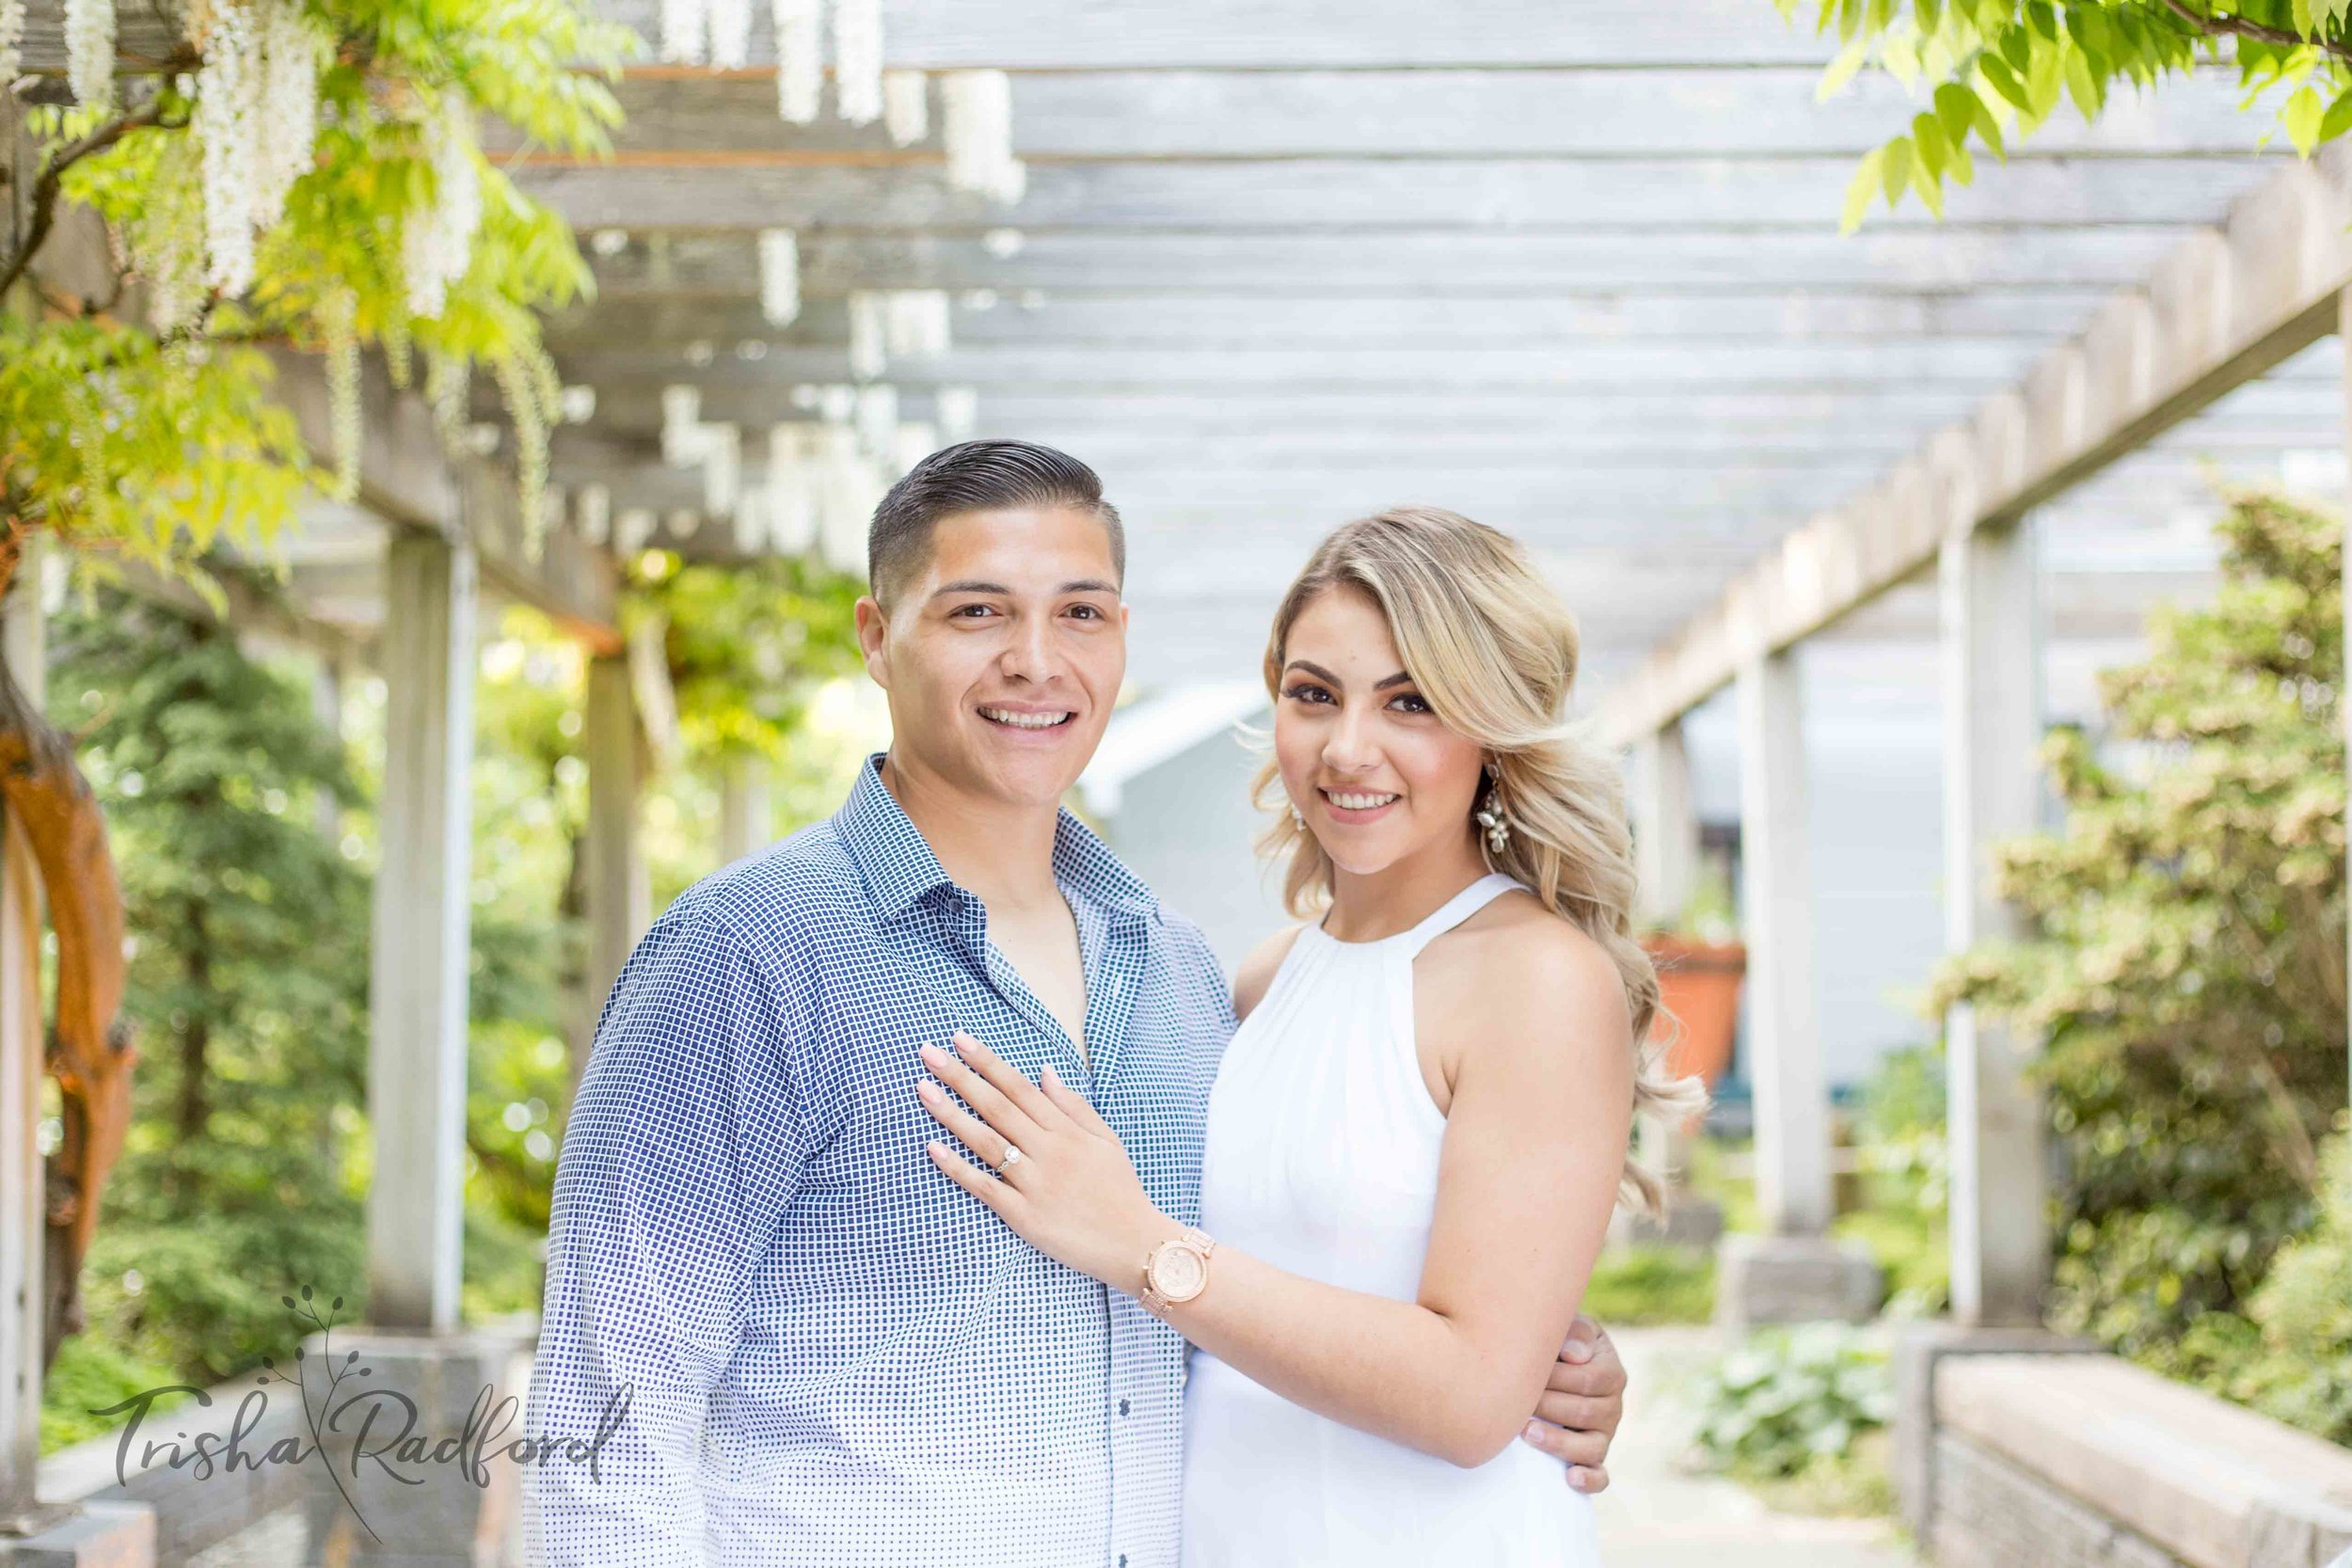 Engagement photoshoot at Washington Park Arboretum